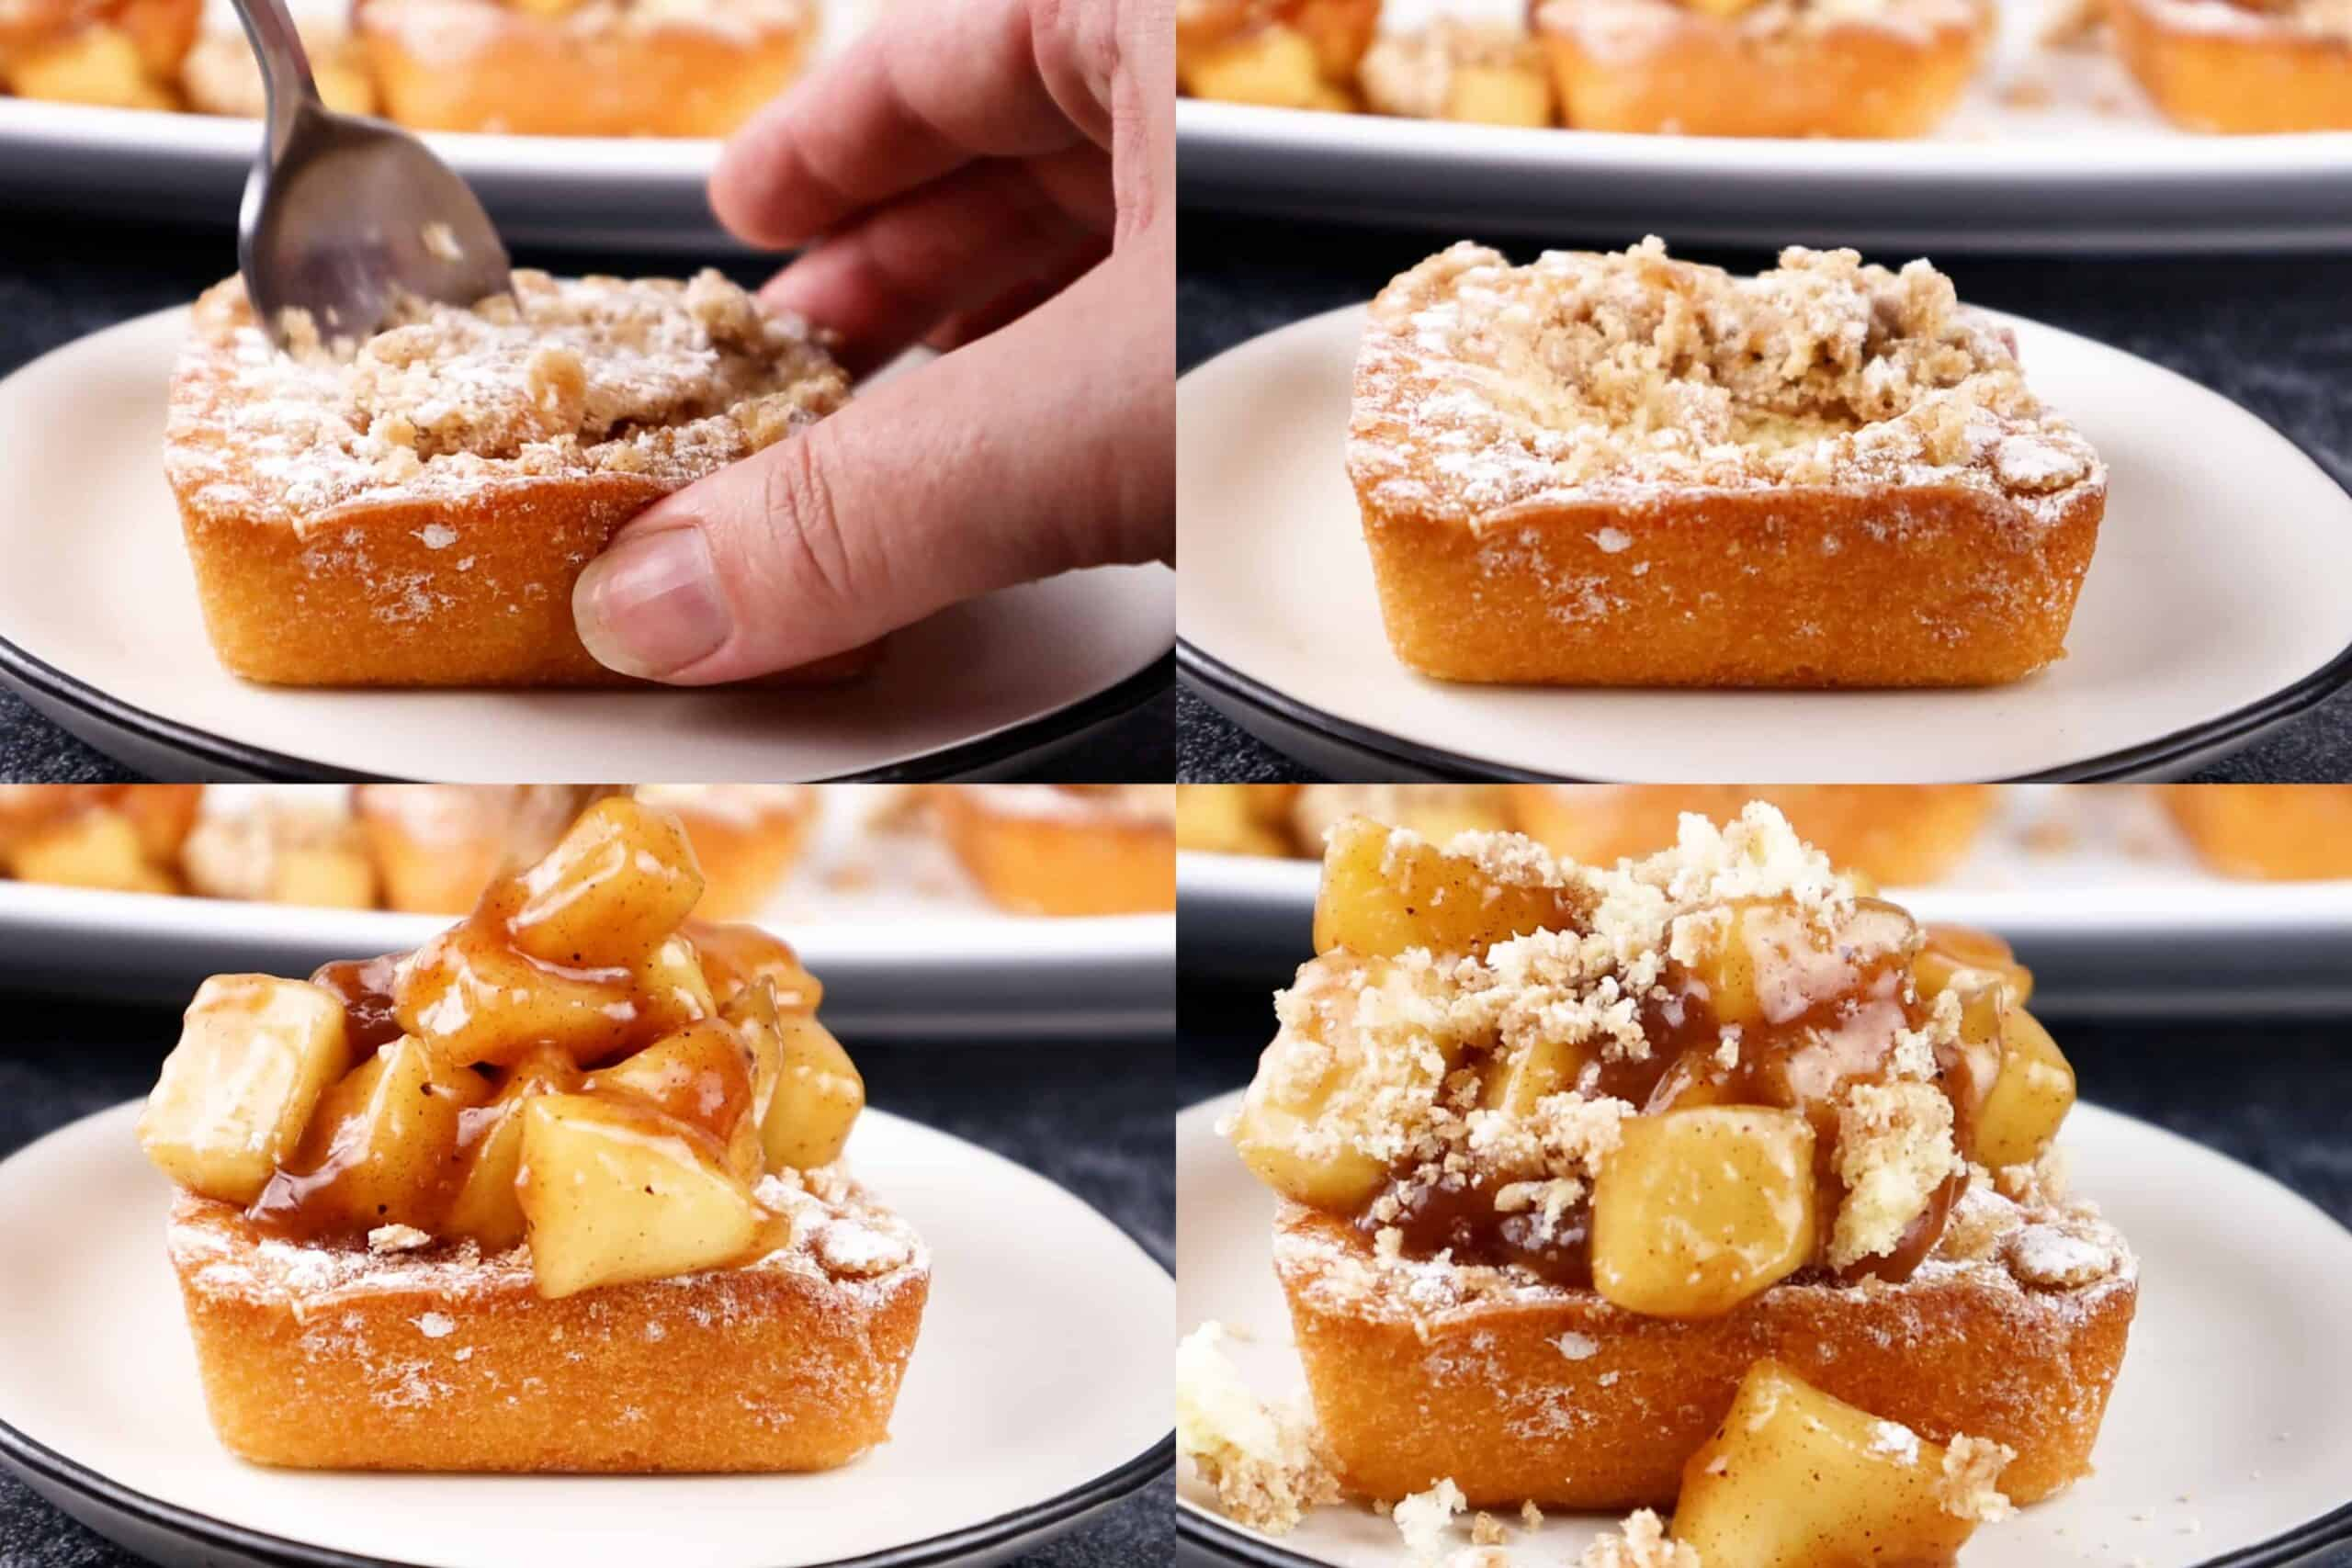 cut the top of the crumb cakes and top with apple mixture